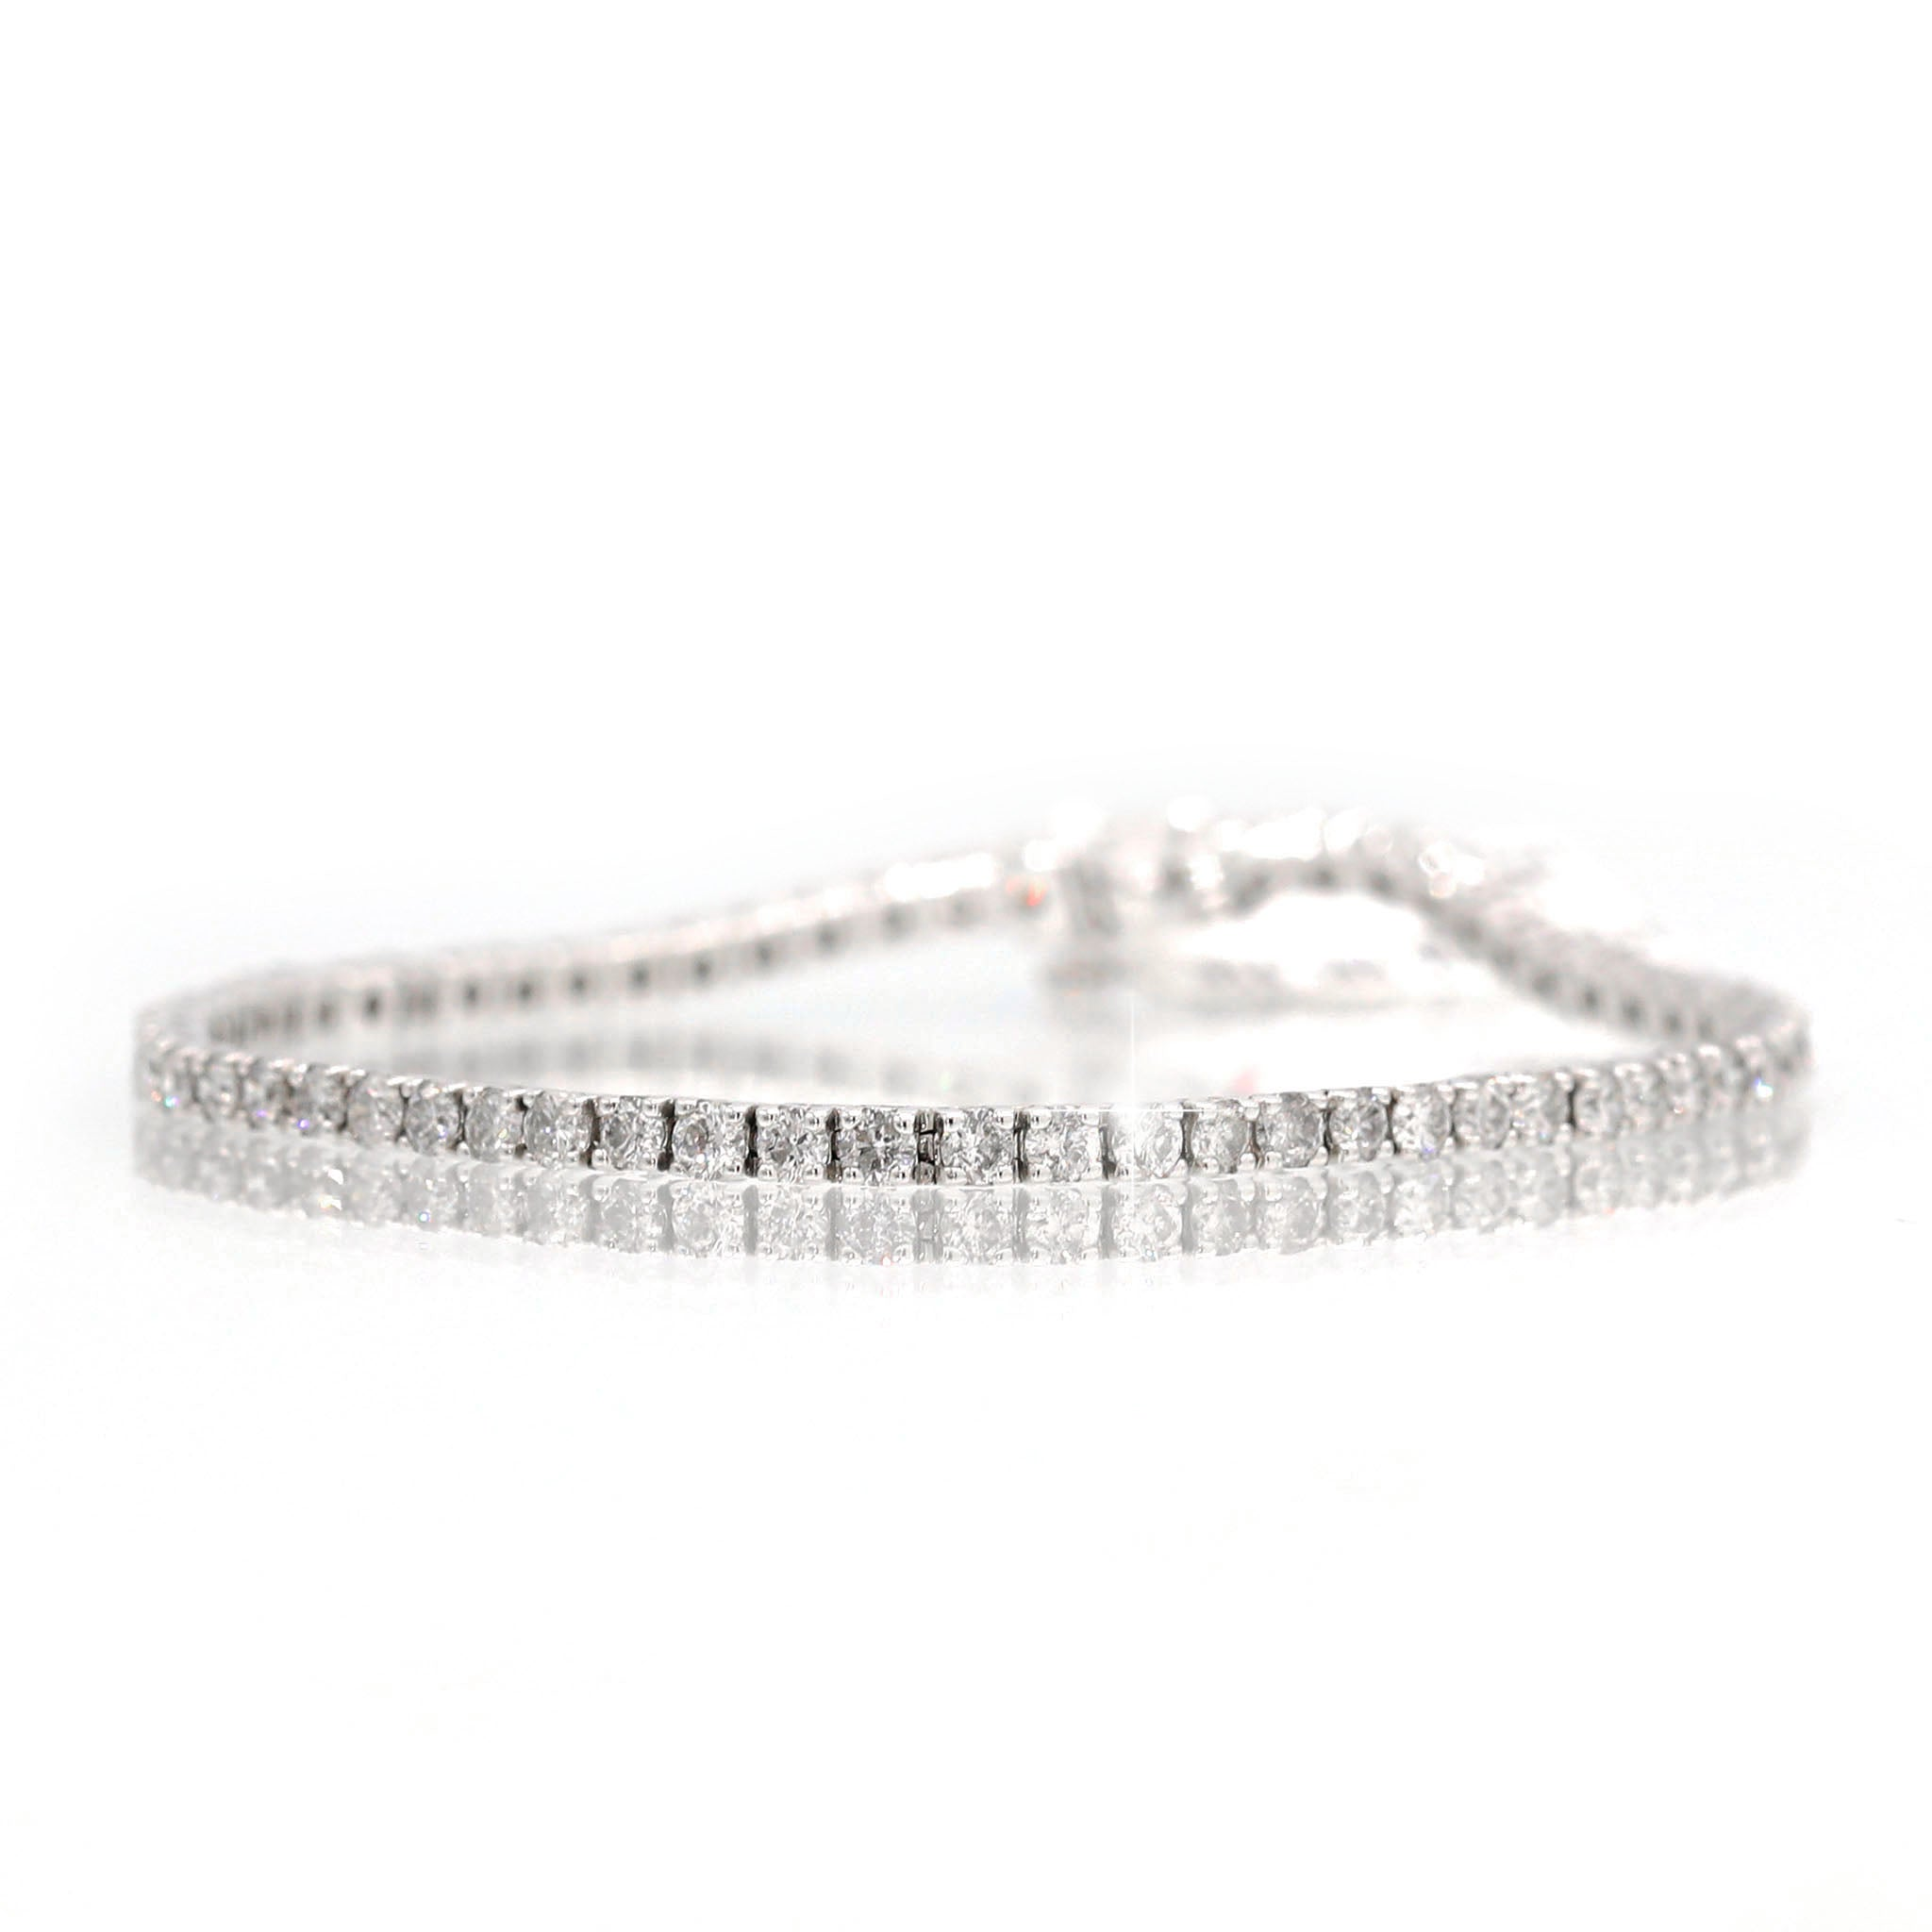 Dazzling 14K White Gold Round Diamond Line Bracelet (4.00ct Carat Diamond Weight)